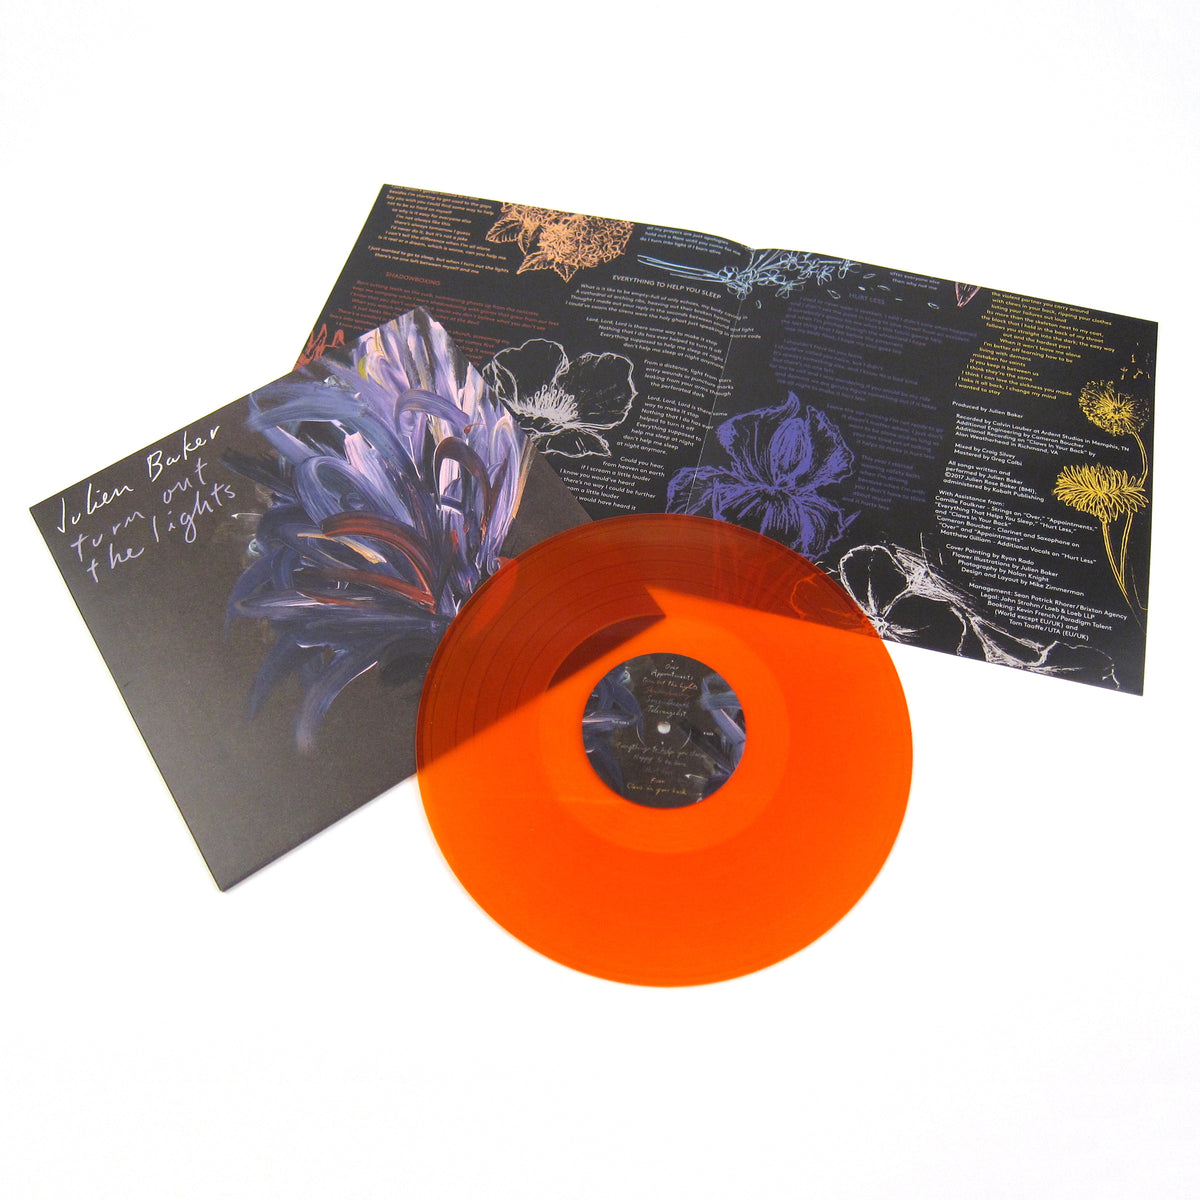 Julien Baker: Turn Out The Lights (Orange Colored Vinyl) Vinyl LP